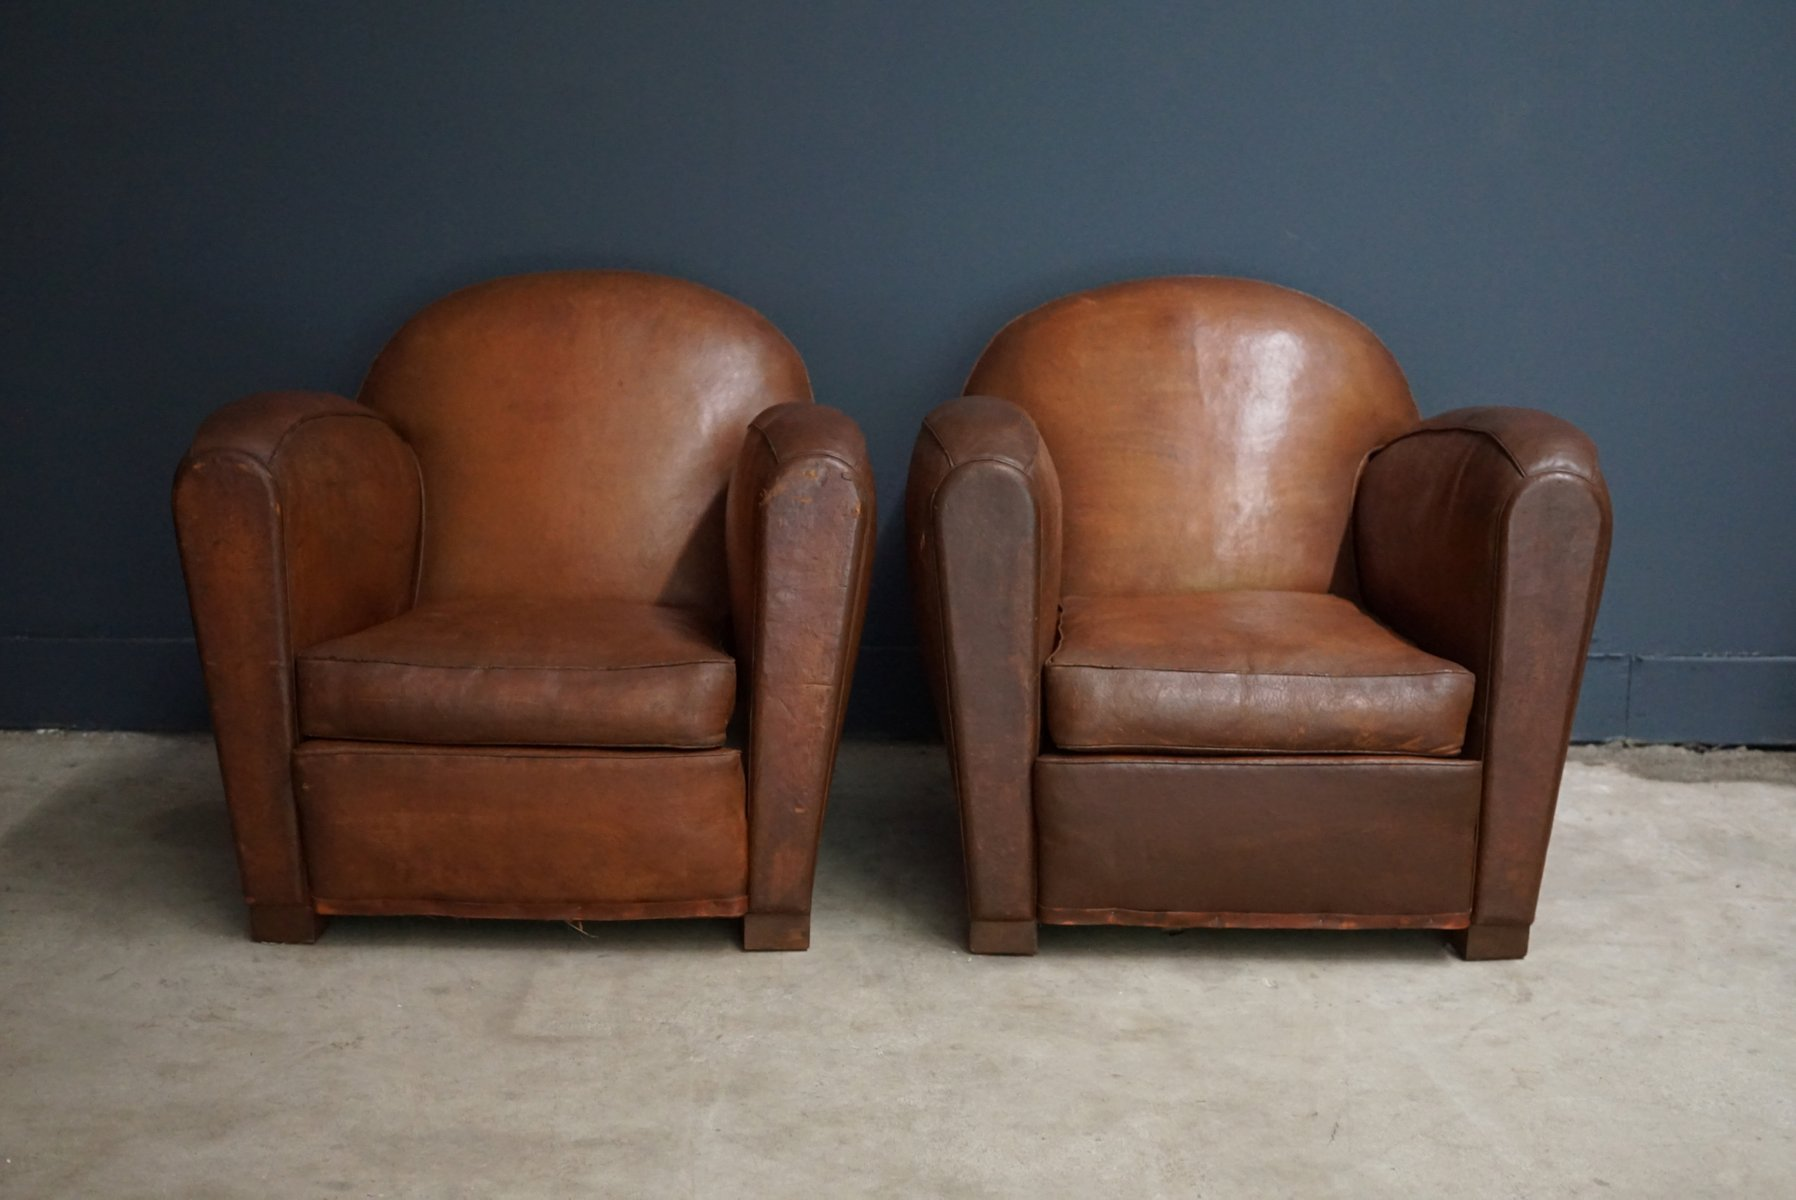 Merveilleux Vintage French Cognac Leather Club Chairs, Set Of 2